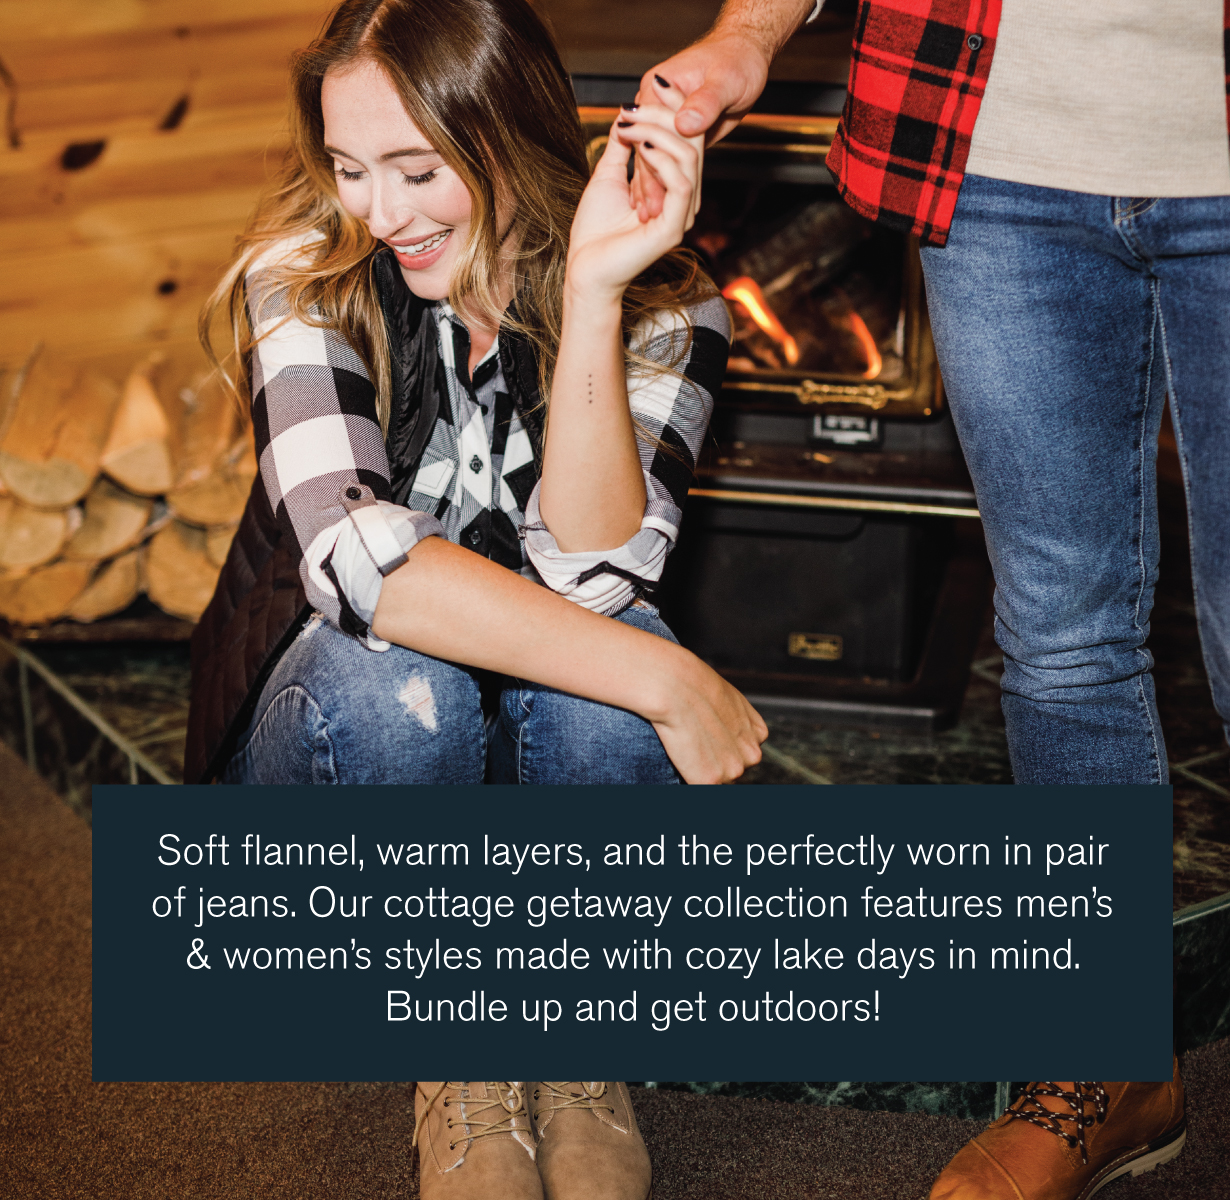 Soft flannel, warm layers, and the perfectly worn in pair of jeans. Our cottage getaway collection features men's & women's styles made with cozy lake days in mind. Bundle up and get outdoors!